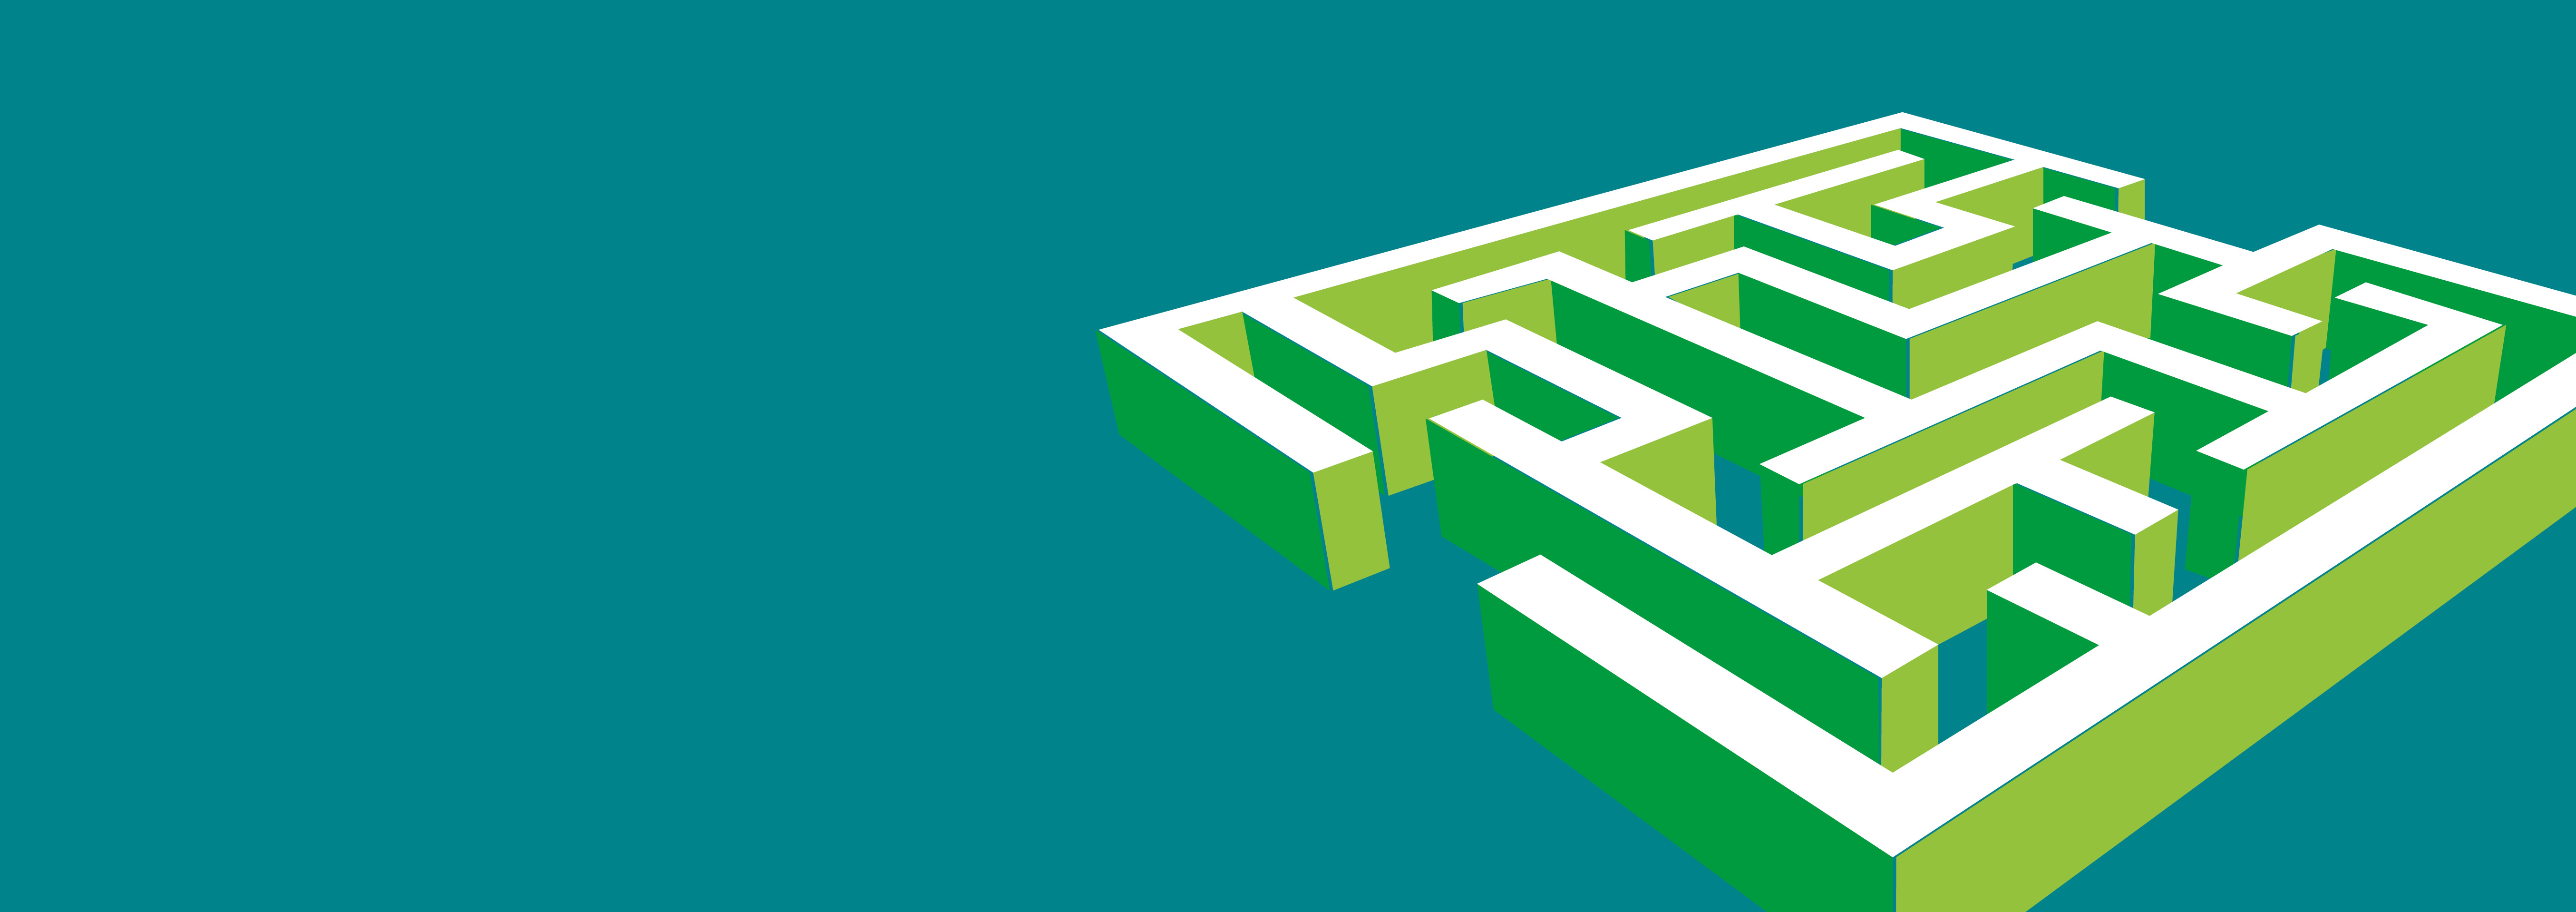 An illustration of a white and green maze on a teal background